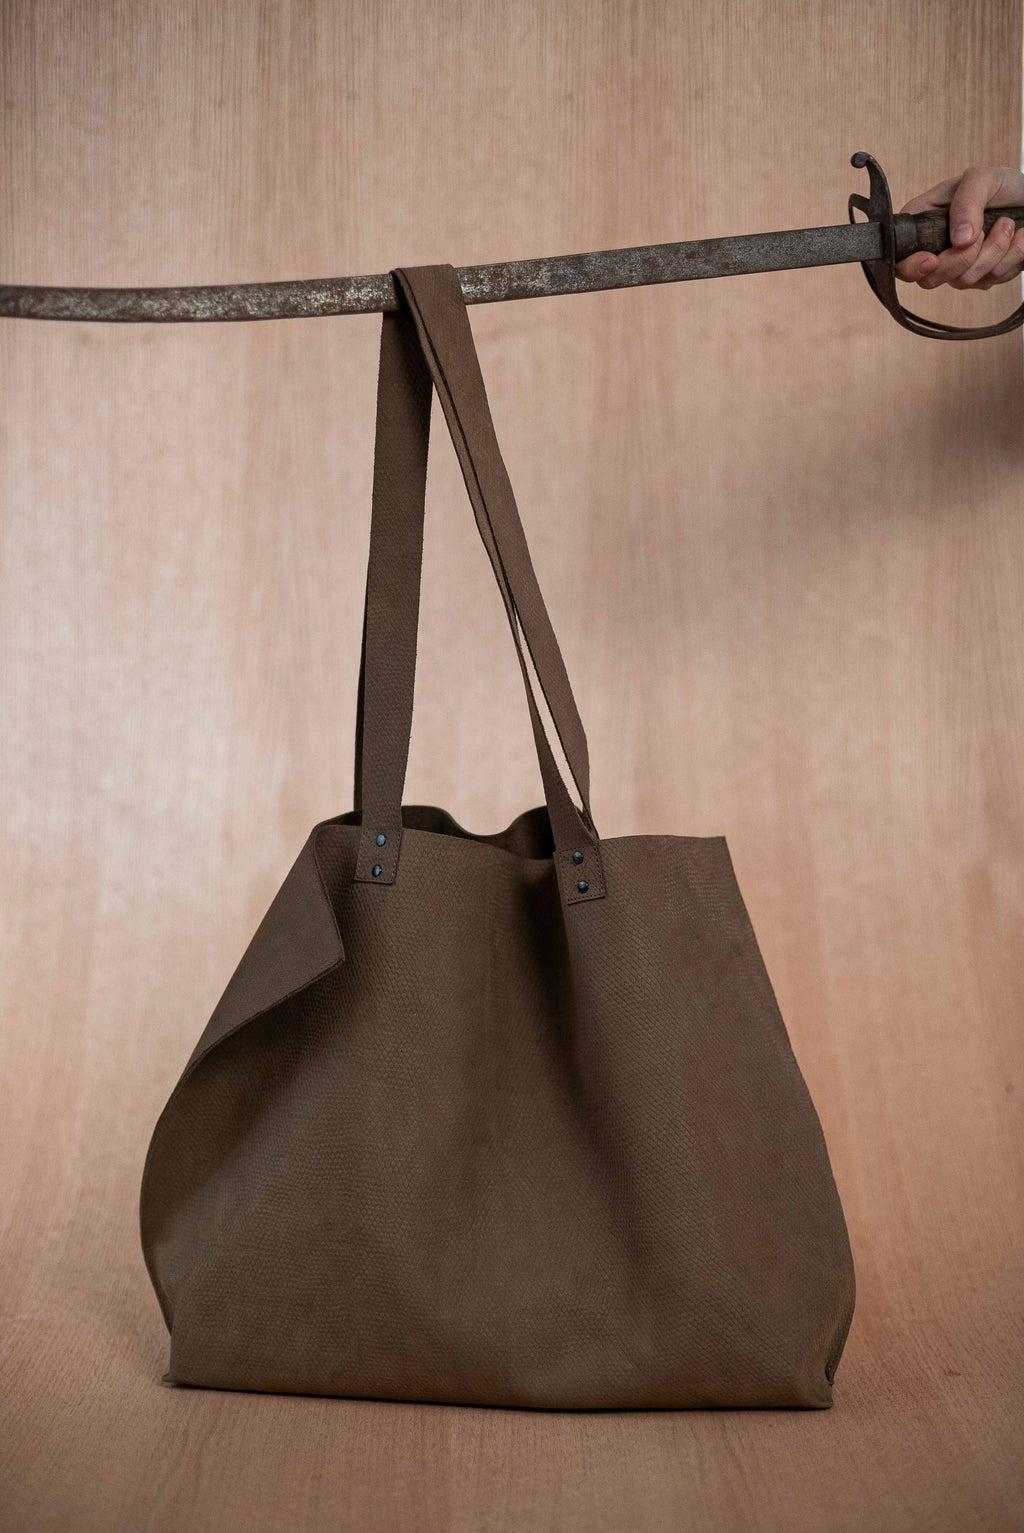 Extra large brown leather viper bag - TOCO MADERA - Handcraft shoe from Mexico - Handmade shoe